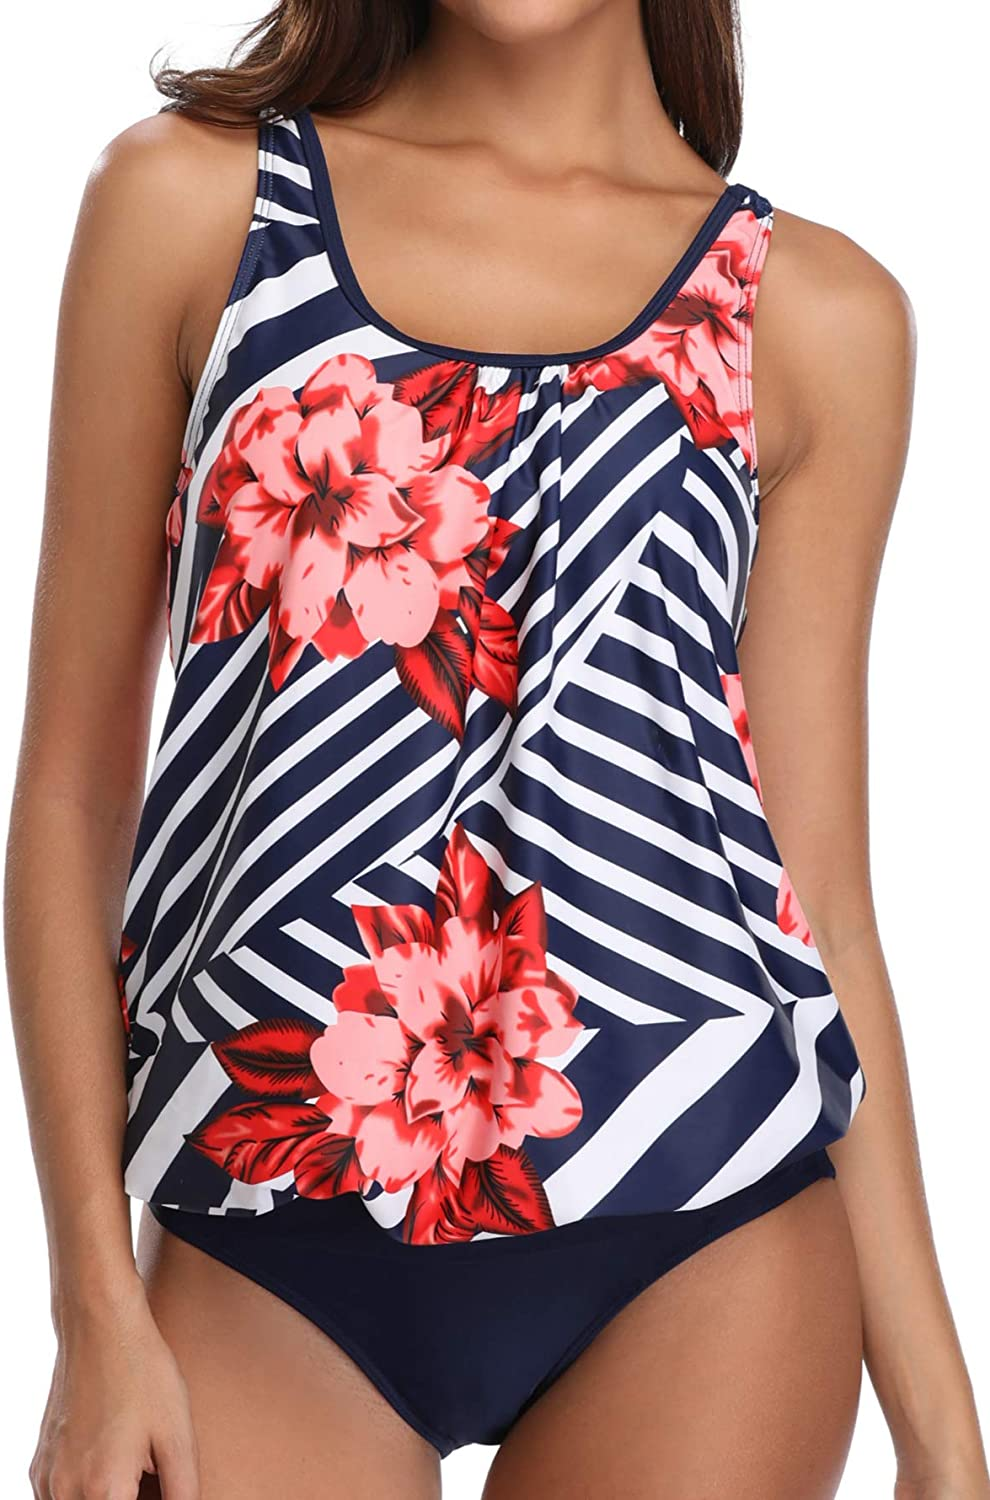 Tankini Swimsuits for Women Halter Two Piece Bathing Suits with Tankini Tops